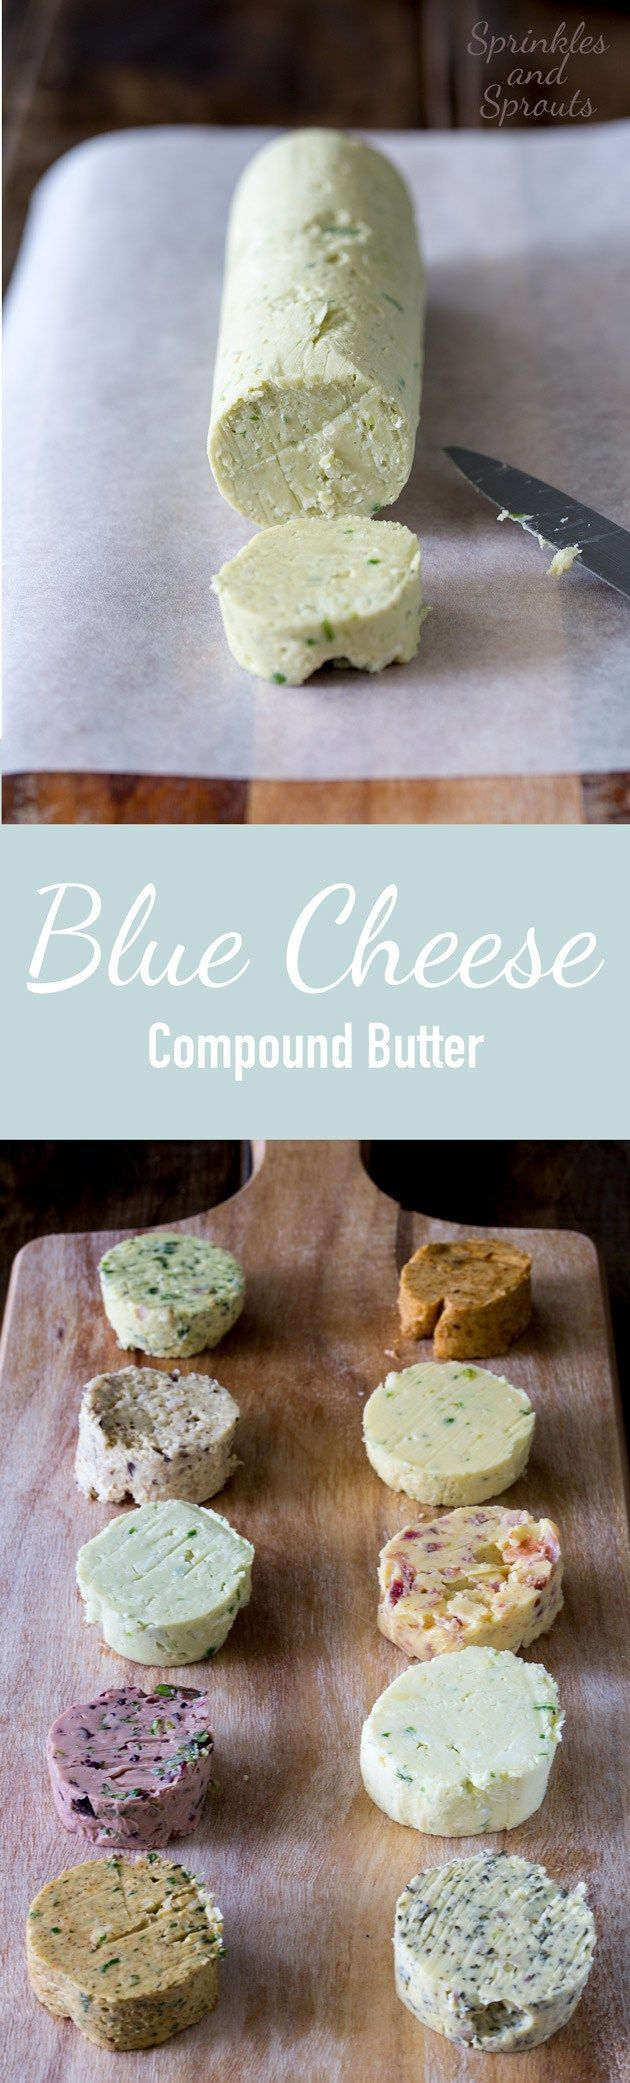 We all know that blue cheese goes well with steak so mixing it with butter makes…